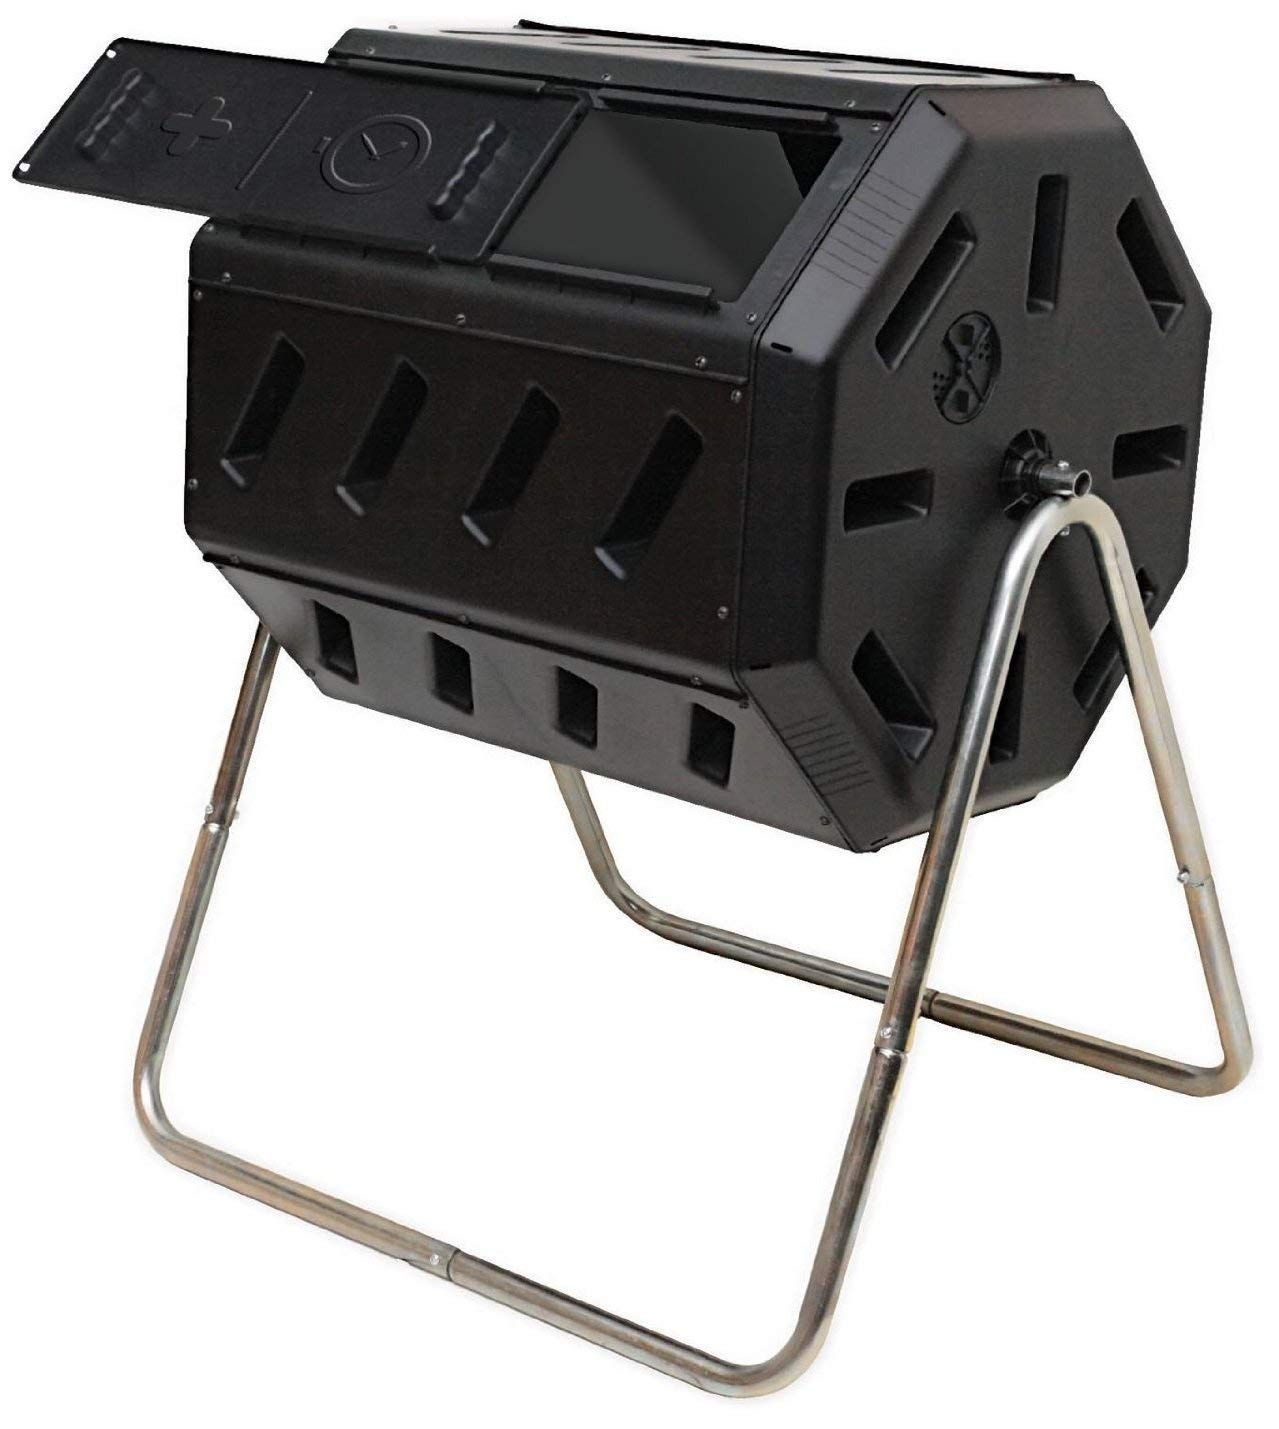 FCMP Outdoor IM4000 Tumbling Composter, 37 Gallon, Black Renewed